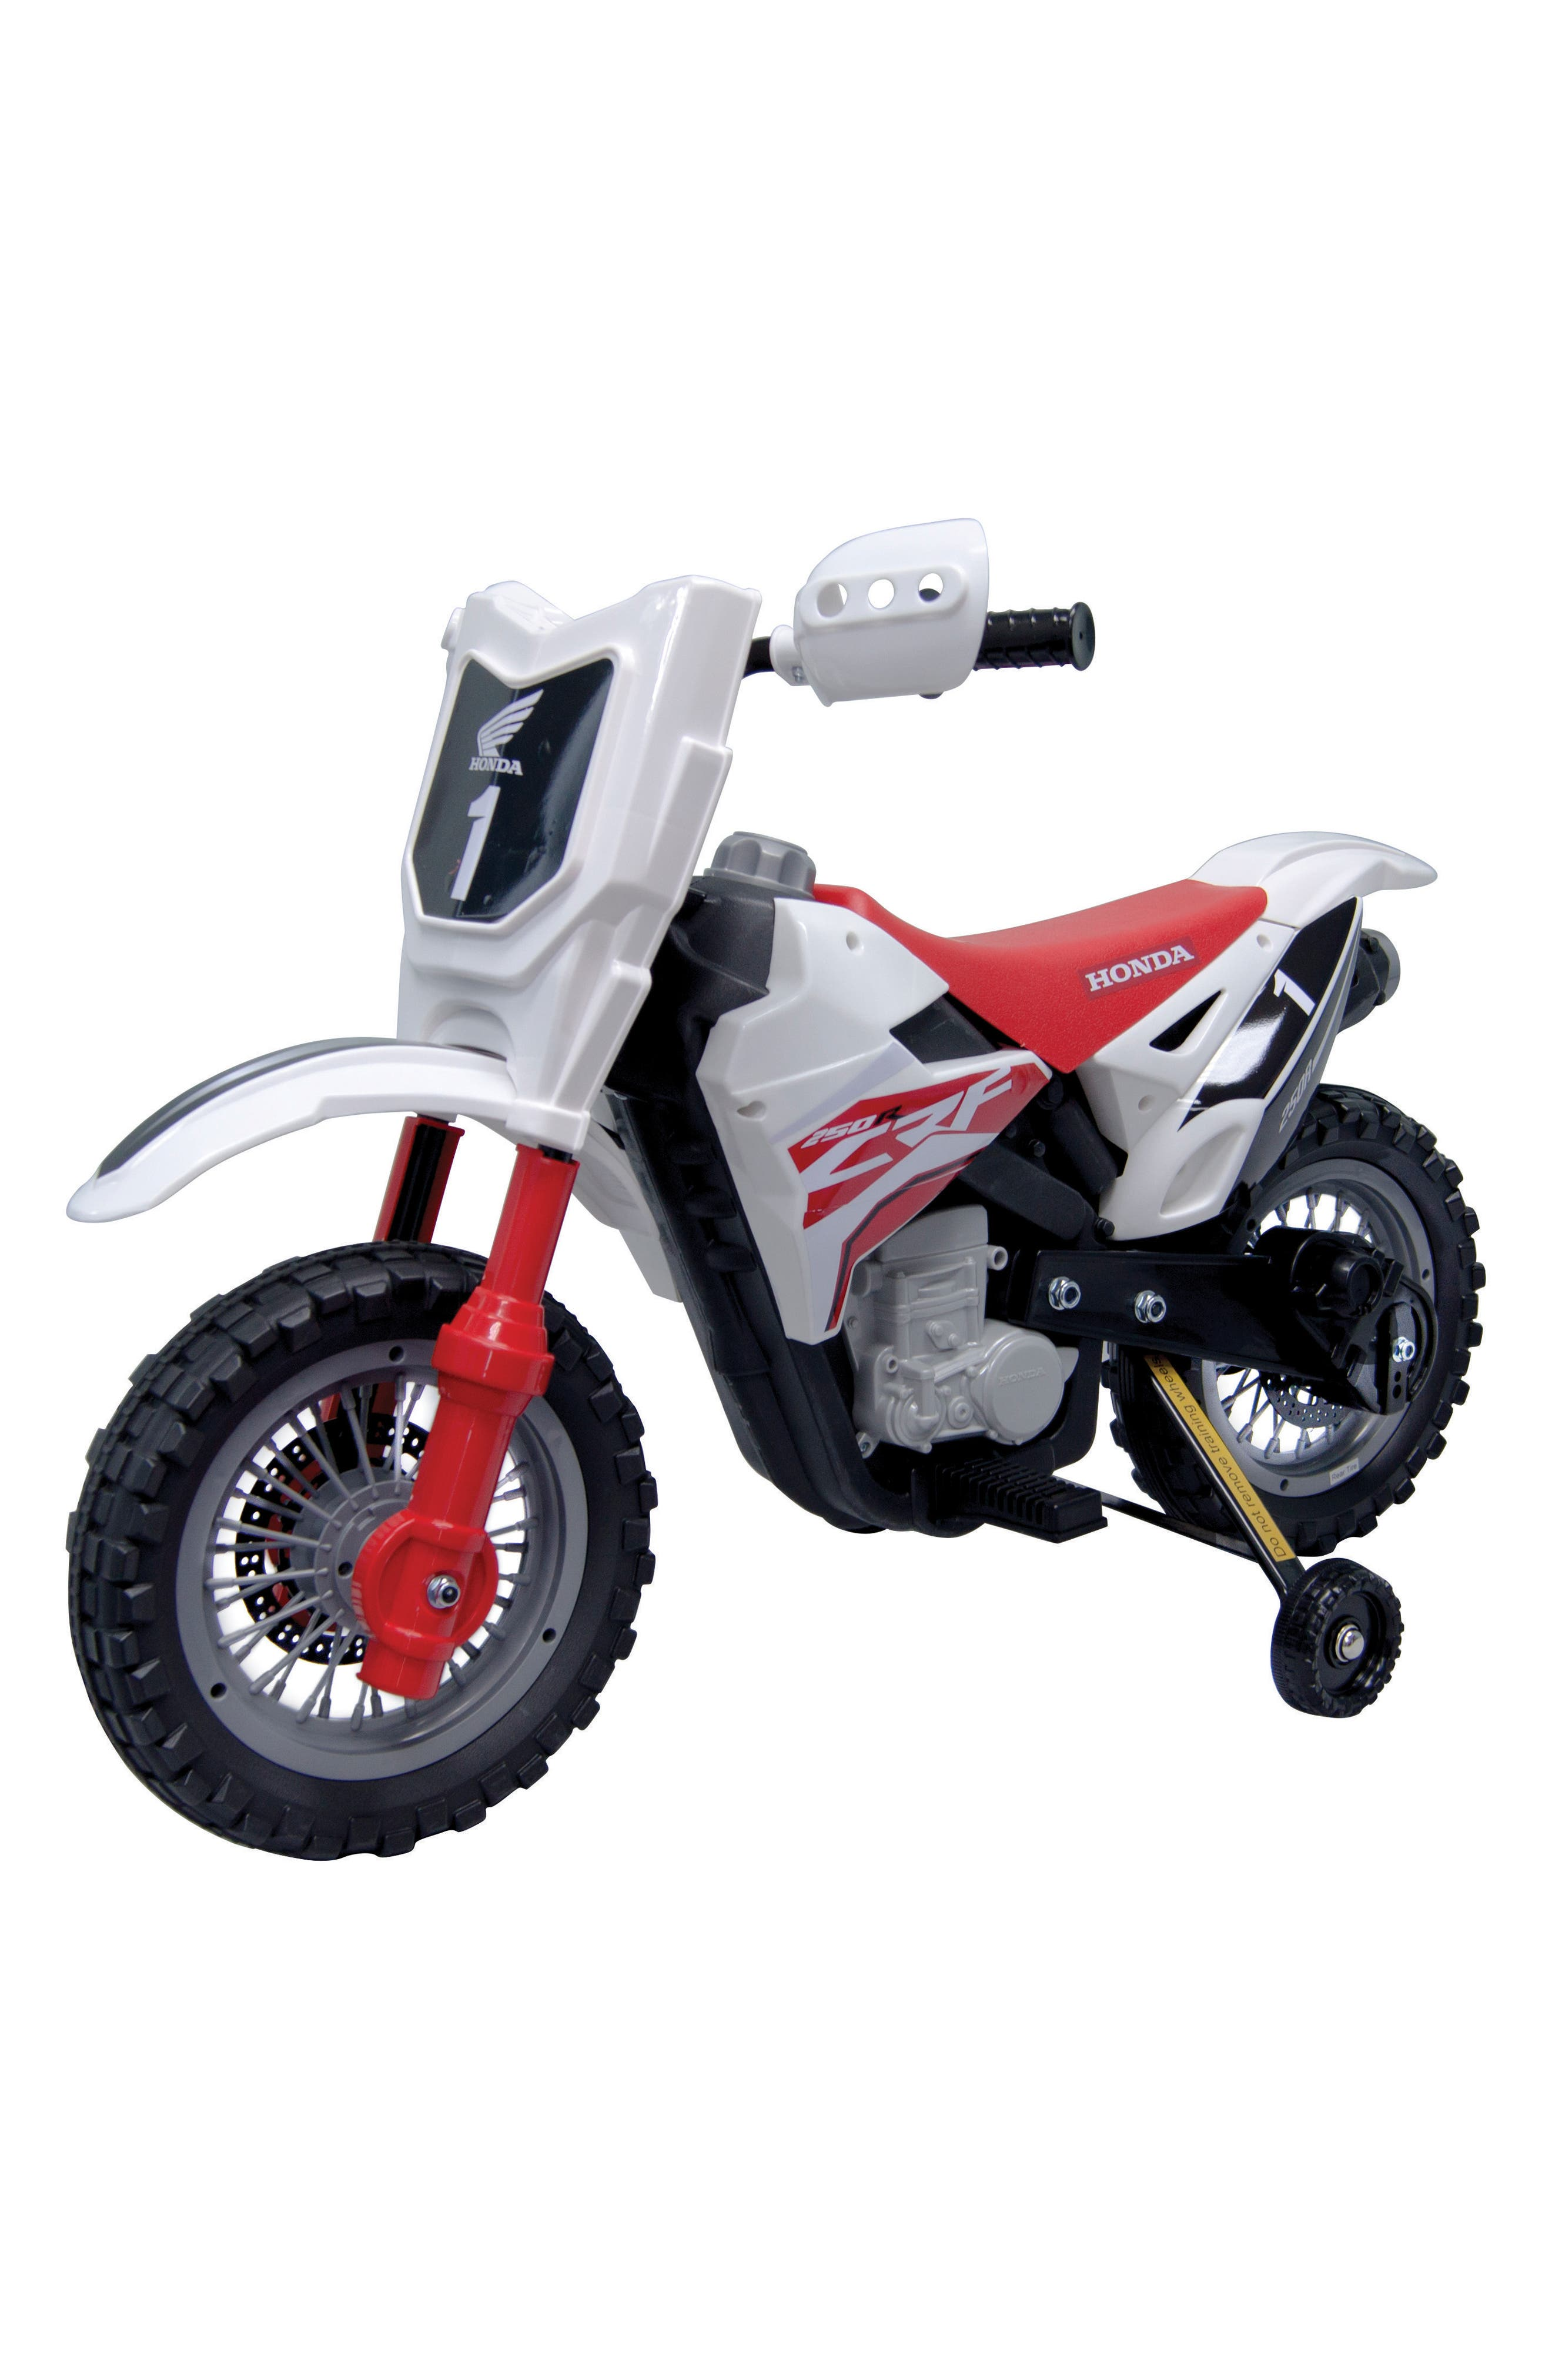 Honda Dirt Bike Ride-On Toy Motorcycle,                             Main thumbnail 1, color,                             White